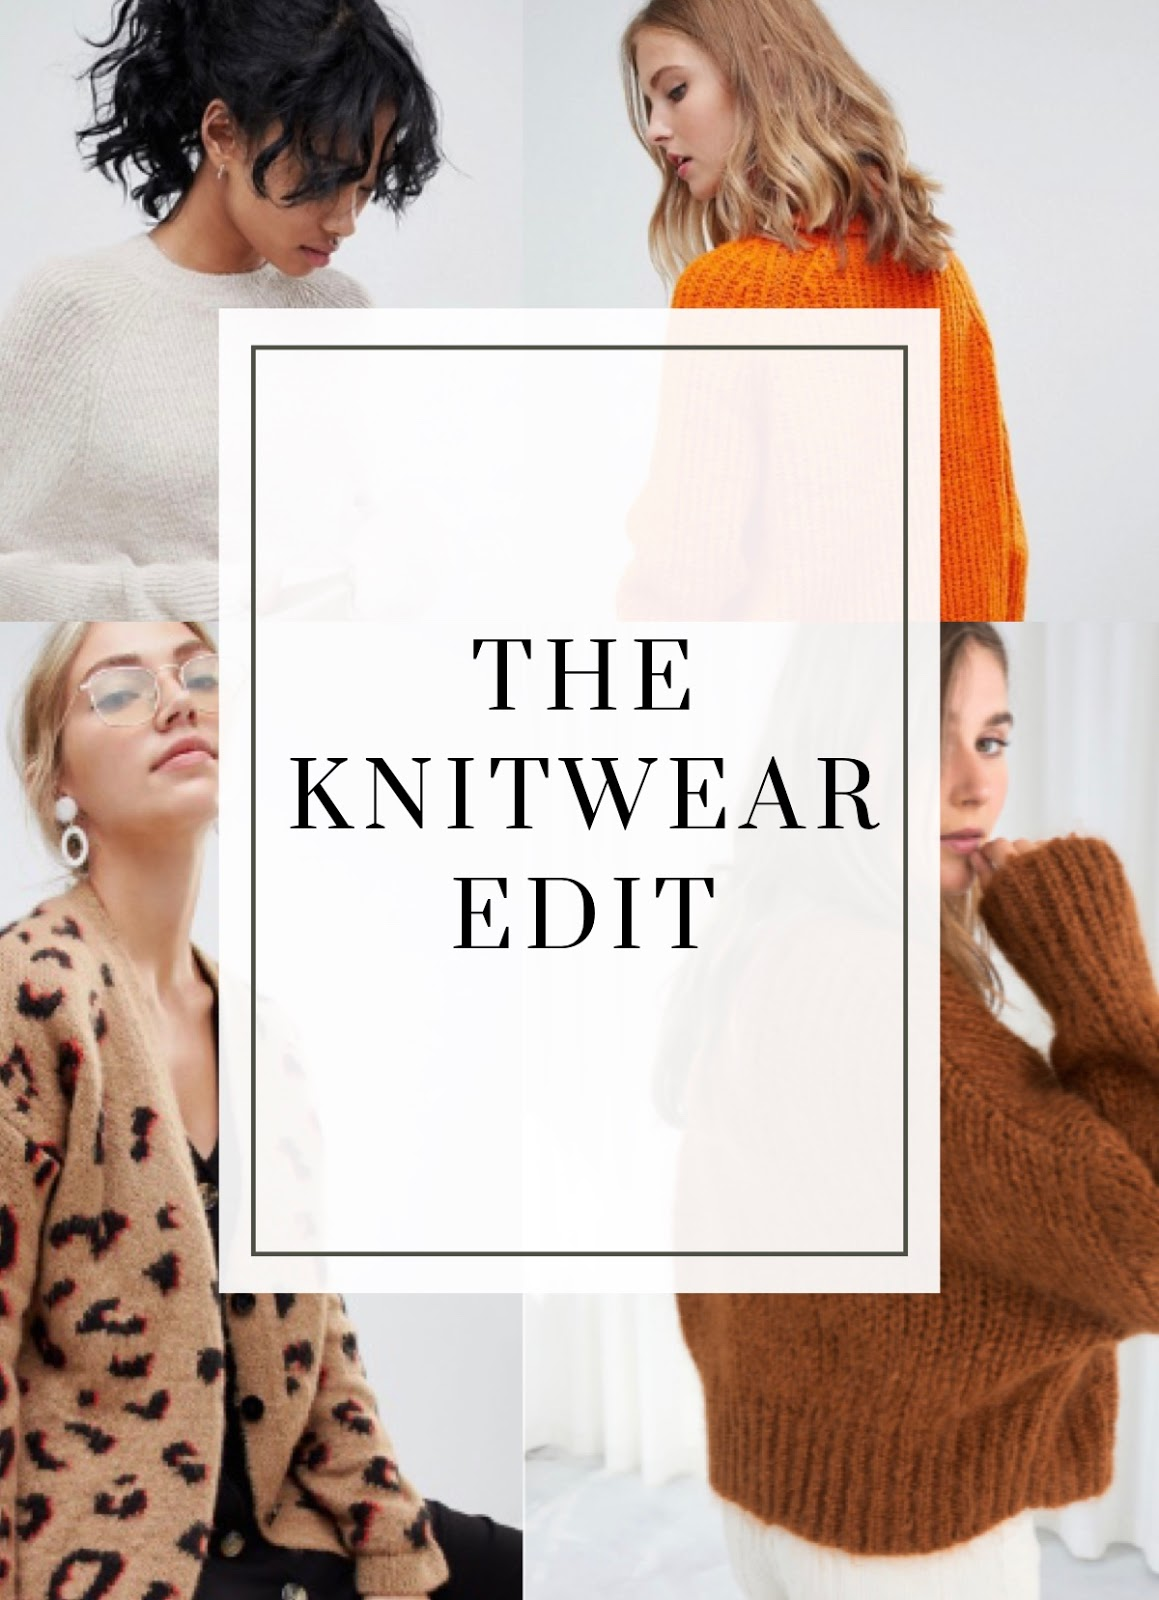 My Top 10 High Street Finds #4 - The Knitwear Edit / Lauren Rose Style Fashion Blogger London